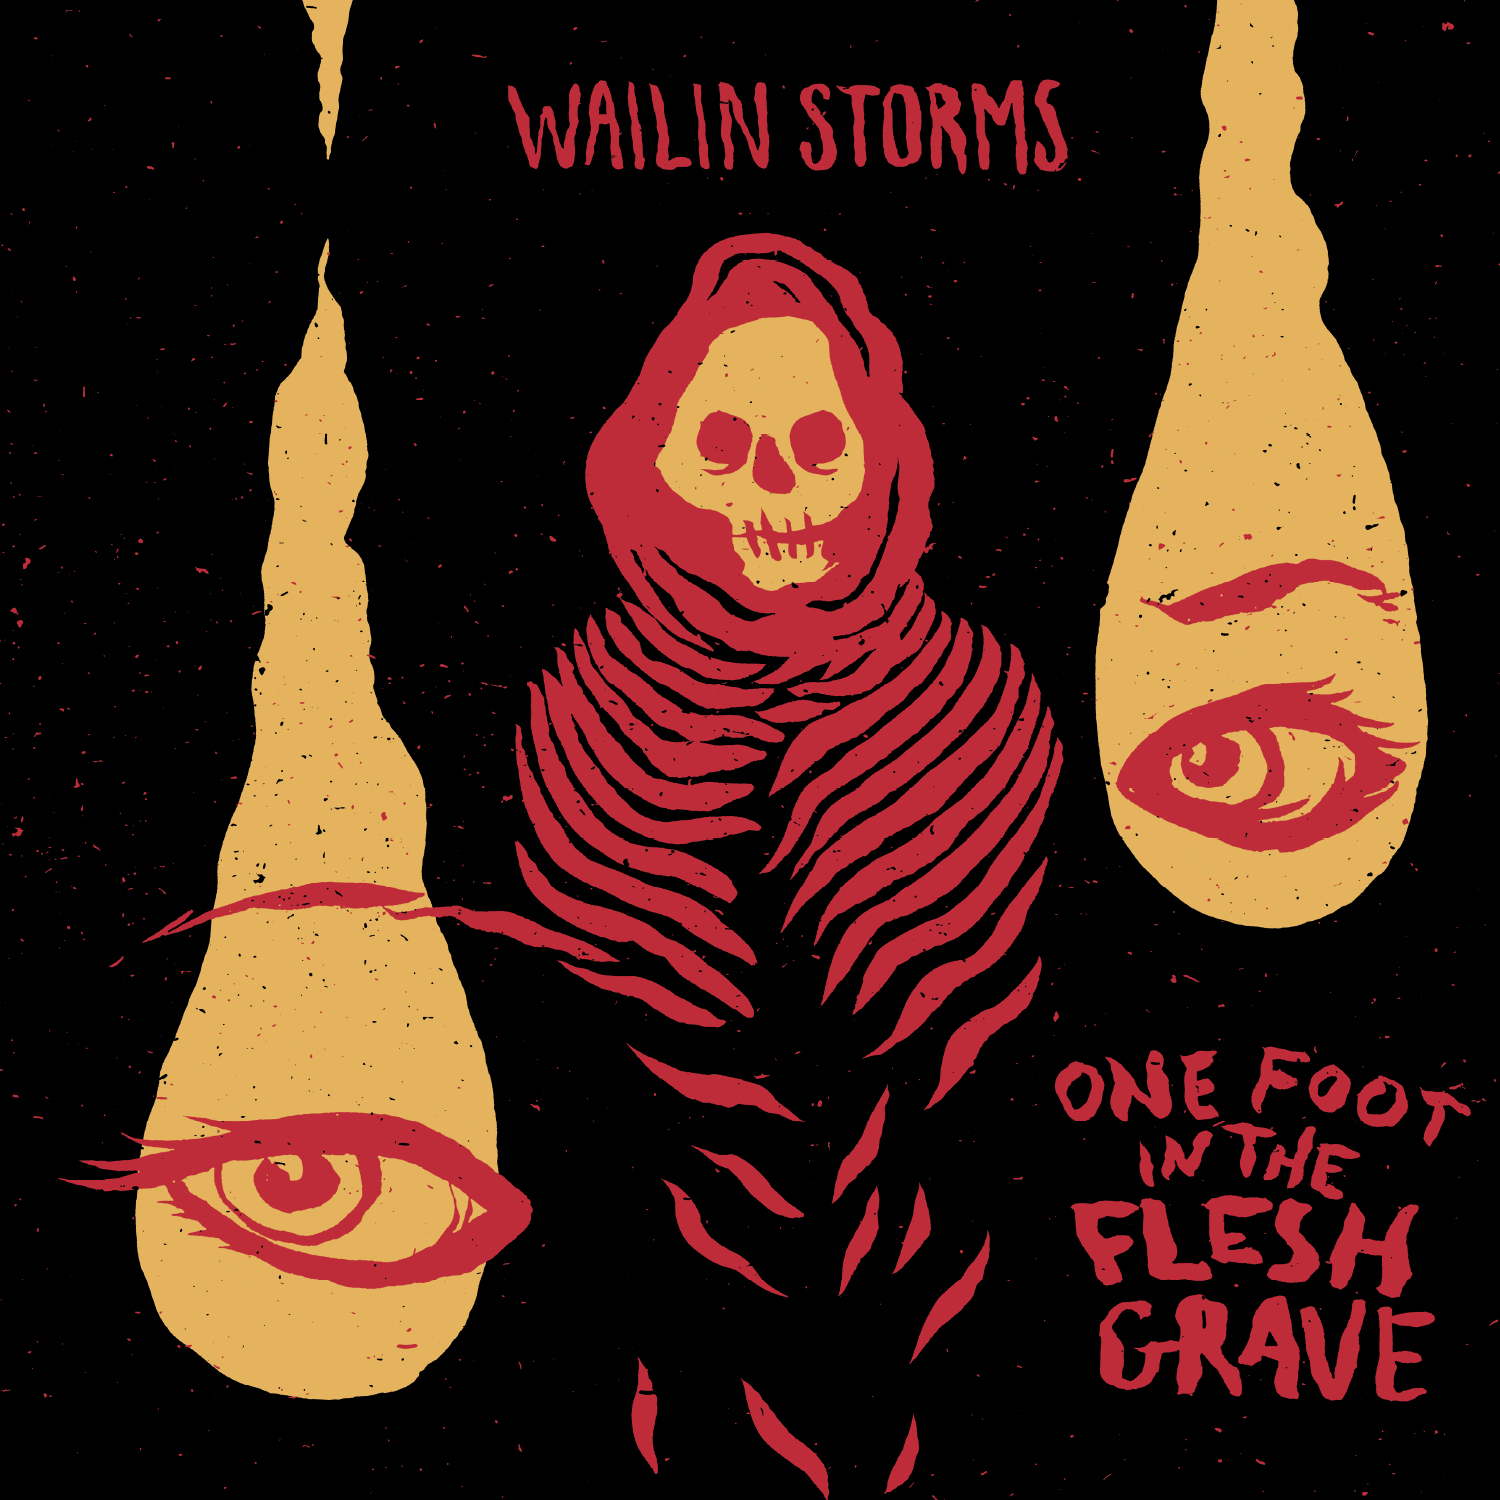 Wailin Storms – One Foot in the Flesh Grave Review